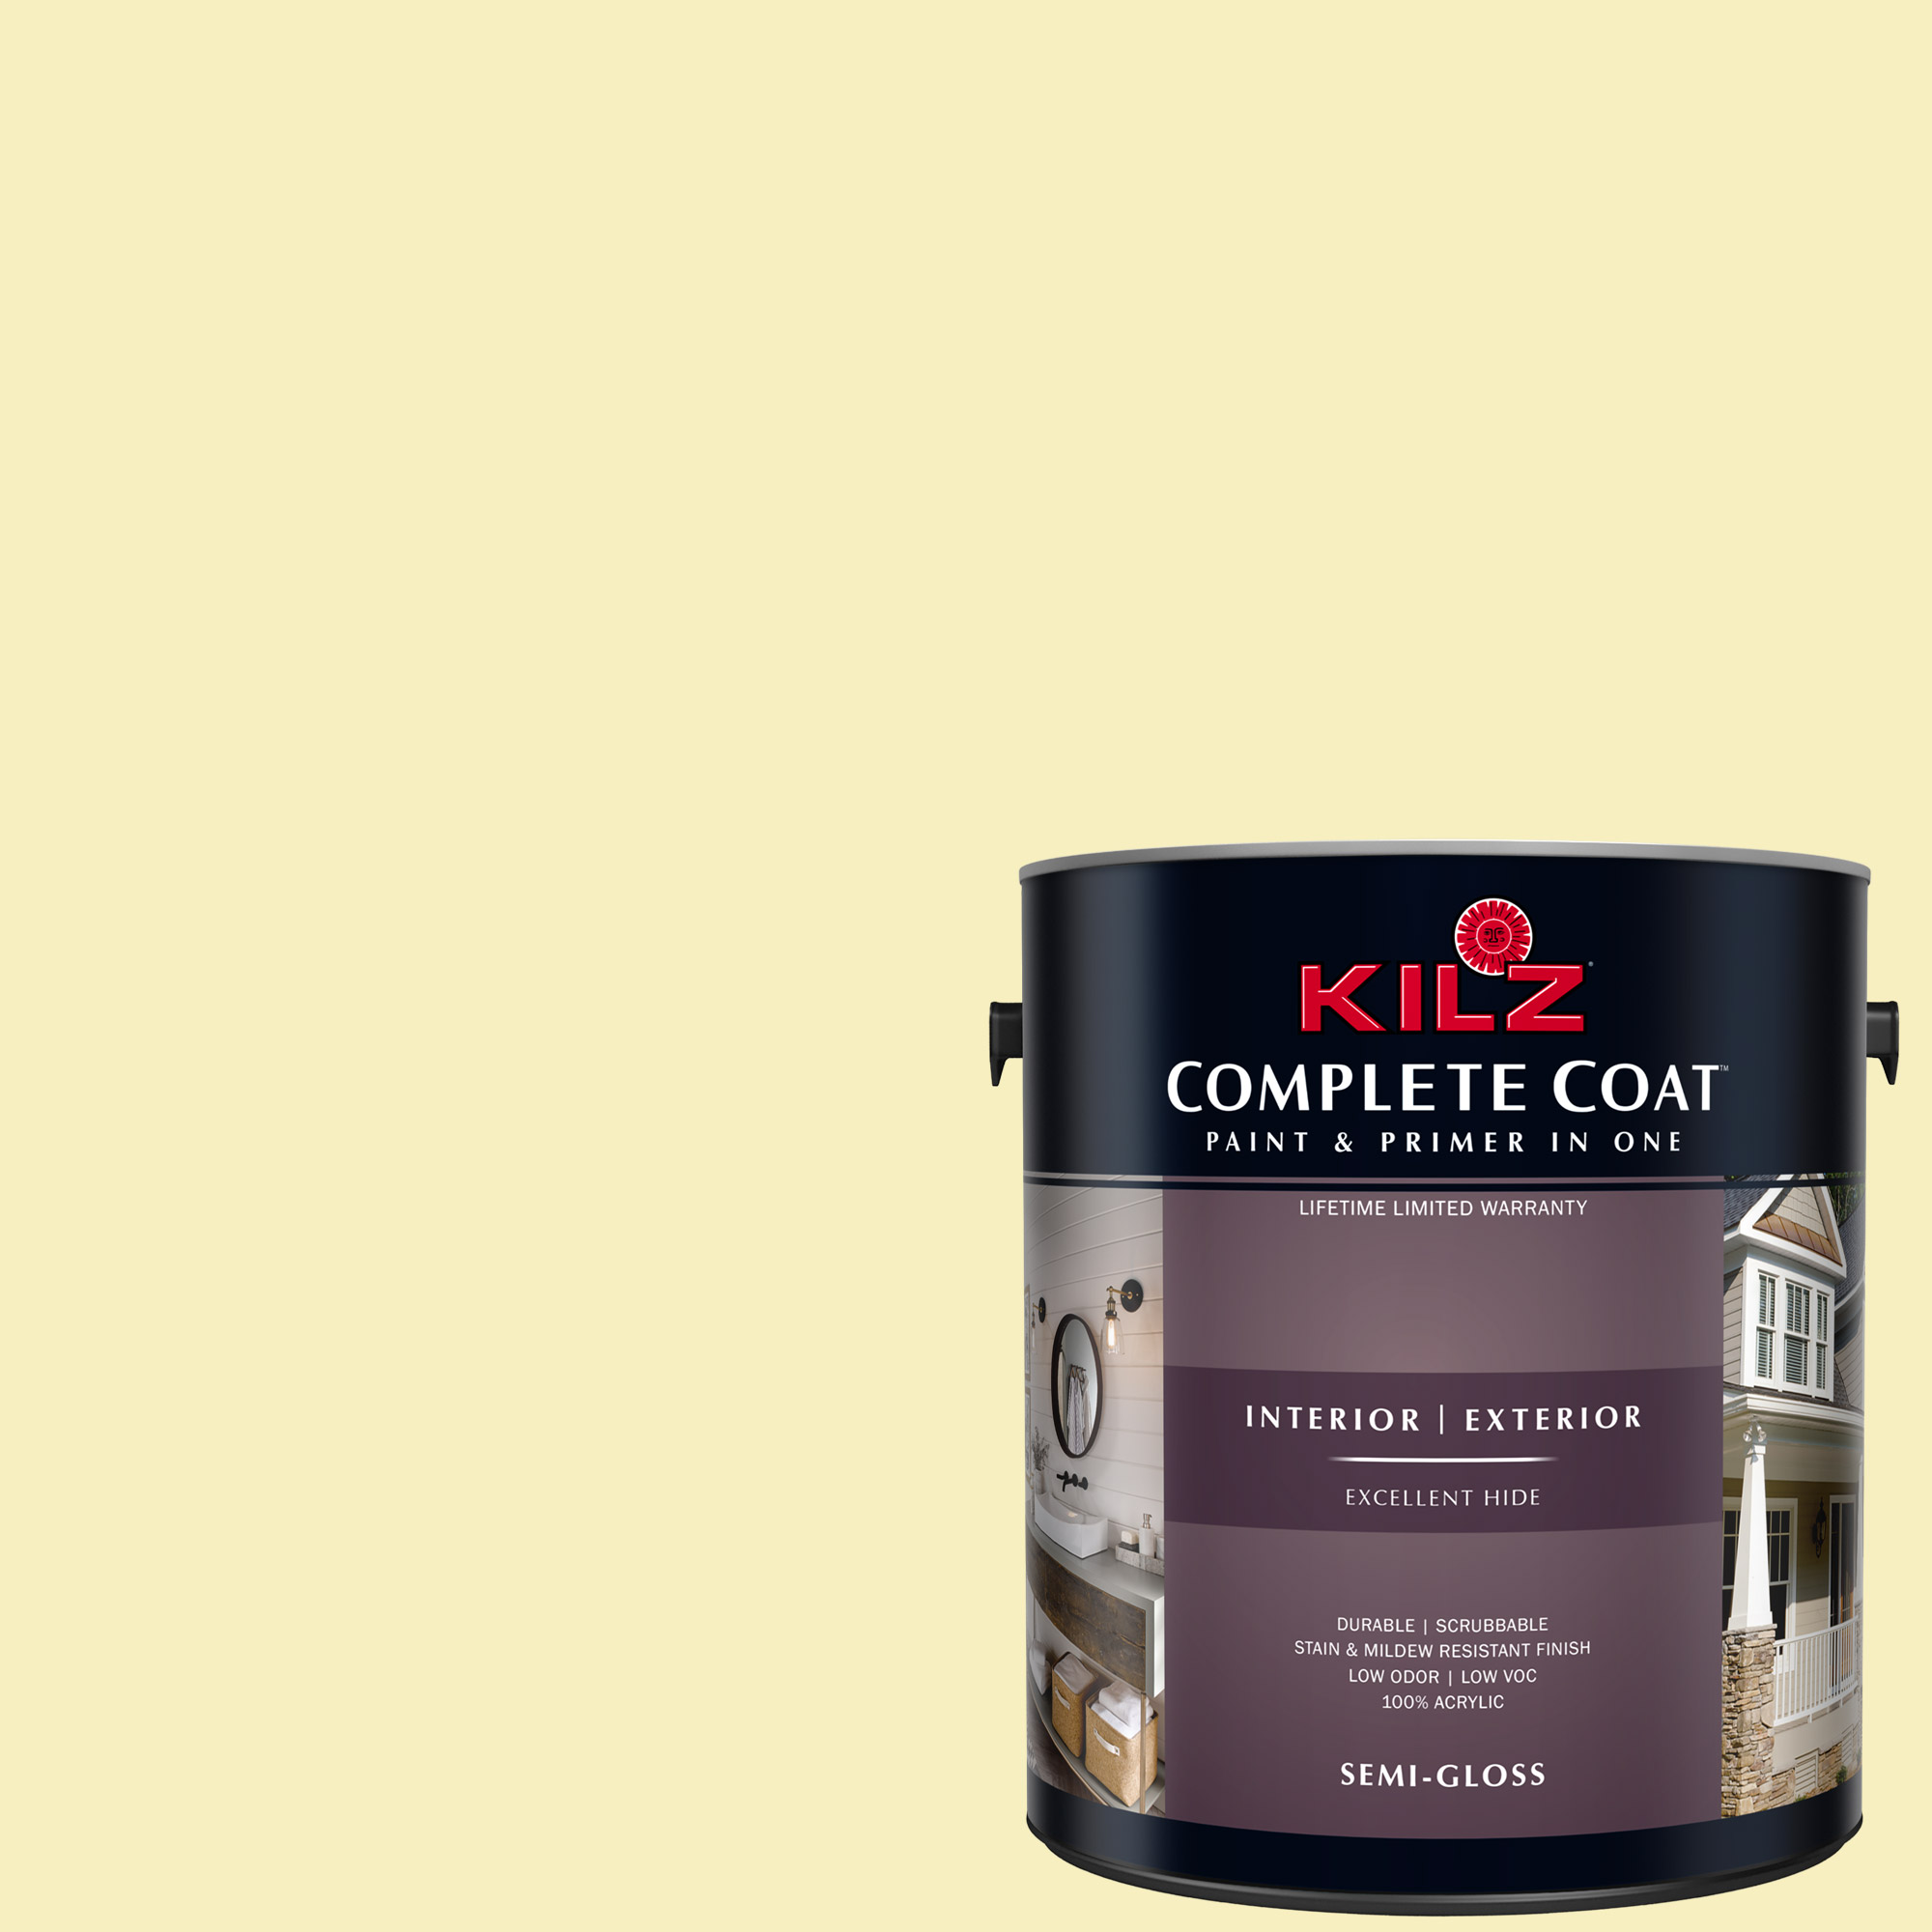 KILZ COMPLETE COAT Interior/Exterior Paint & Primer in One #LE210-02 Yellow Taffy